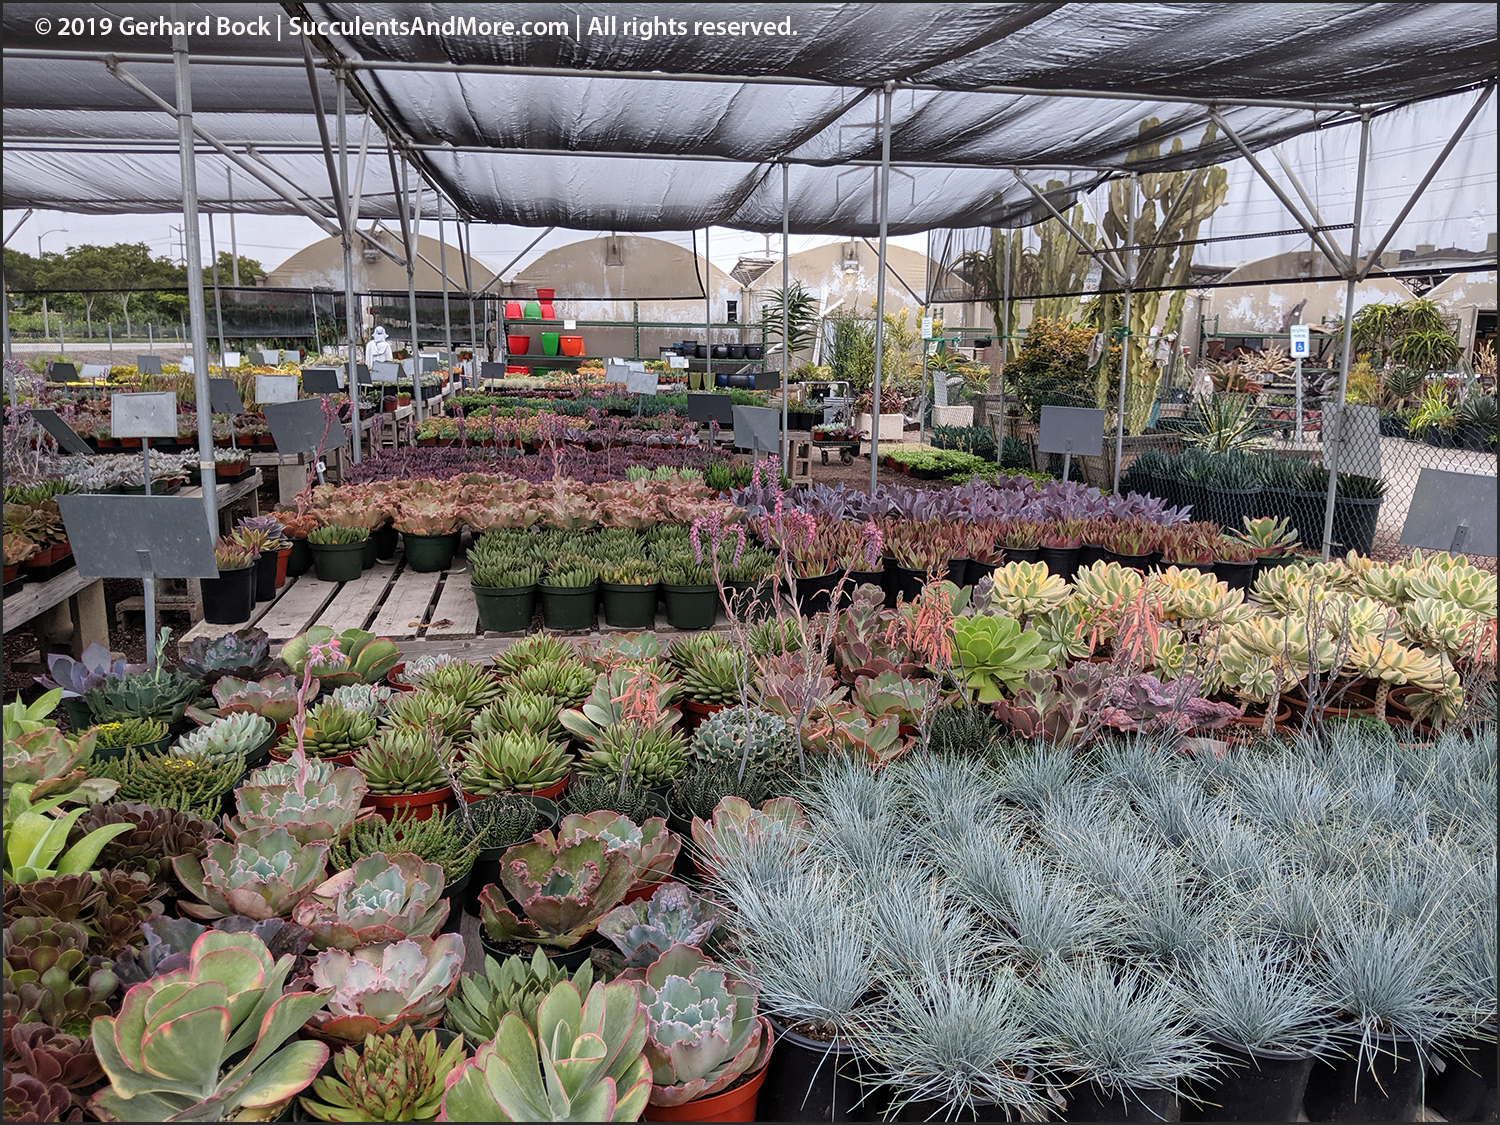 Checking Out Oc Succulents Irvine Ca